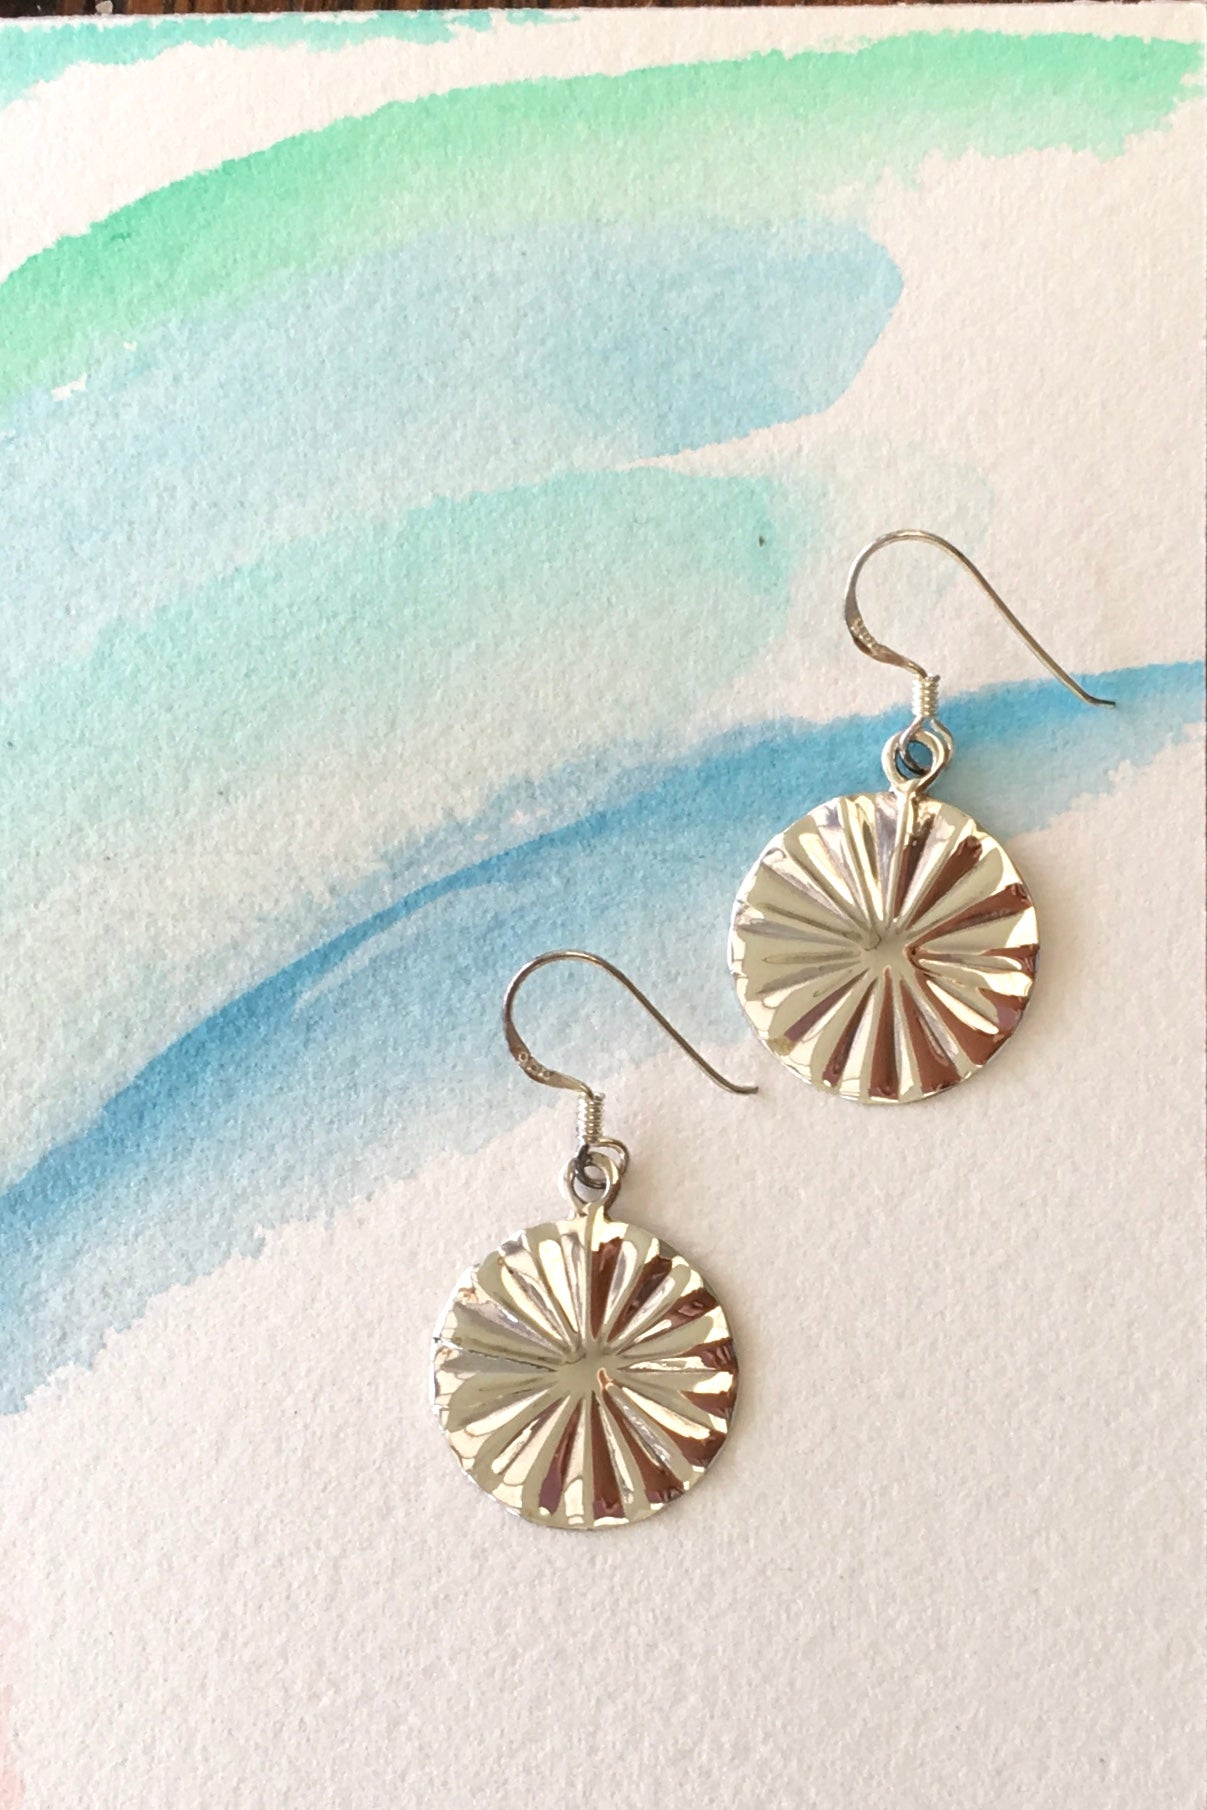 Earrings Silver Greco Hoop are ancient bohemian inspired 925 solid silver thick hoops with rustic detailing